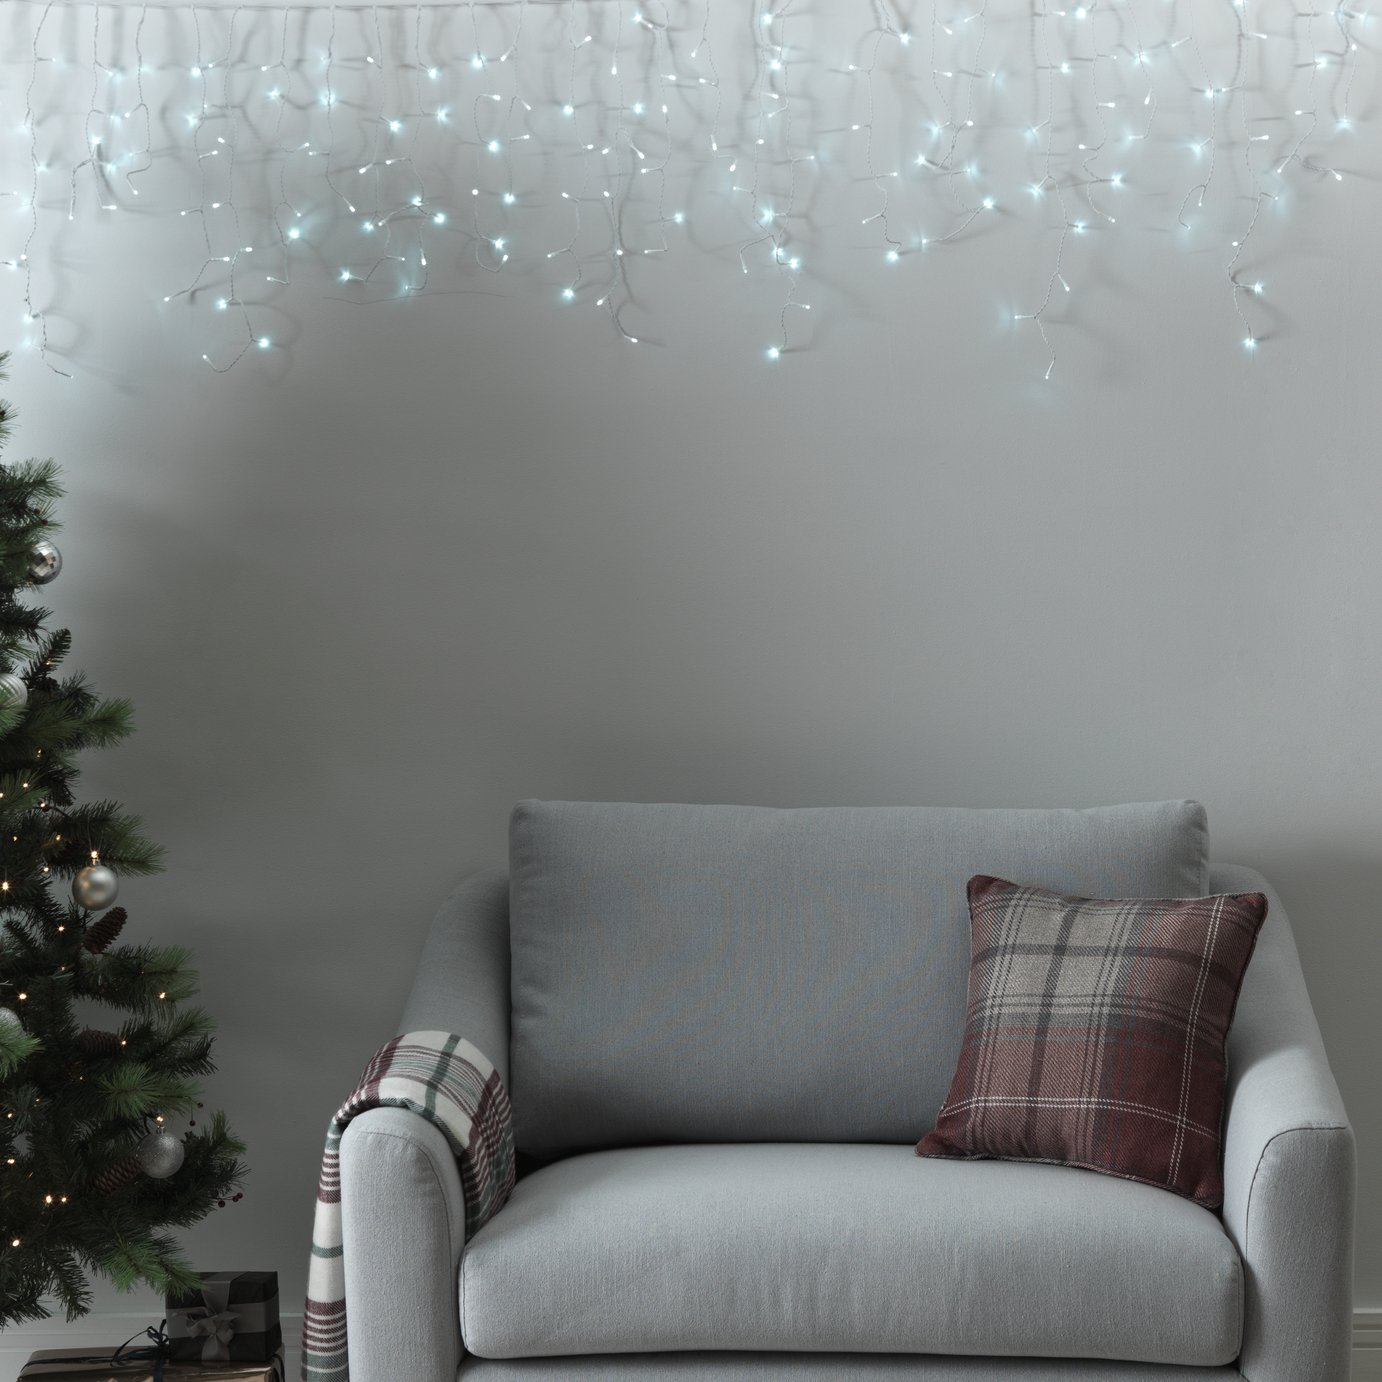 Argos Home 720 Icicle Lights - White